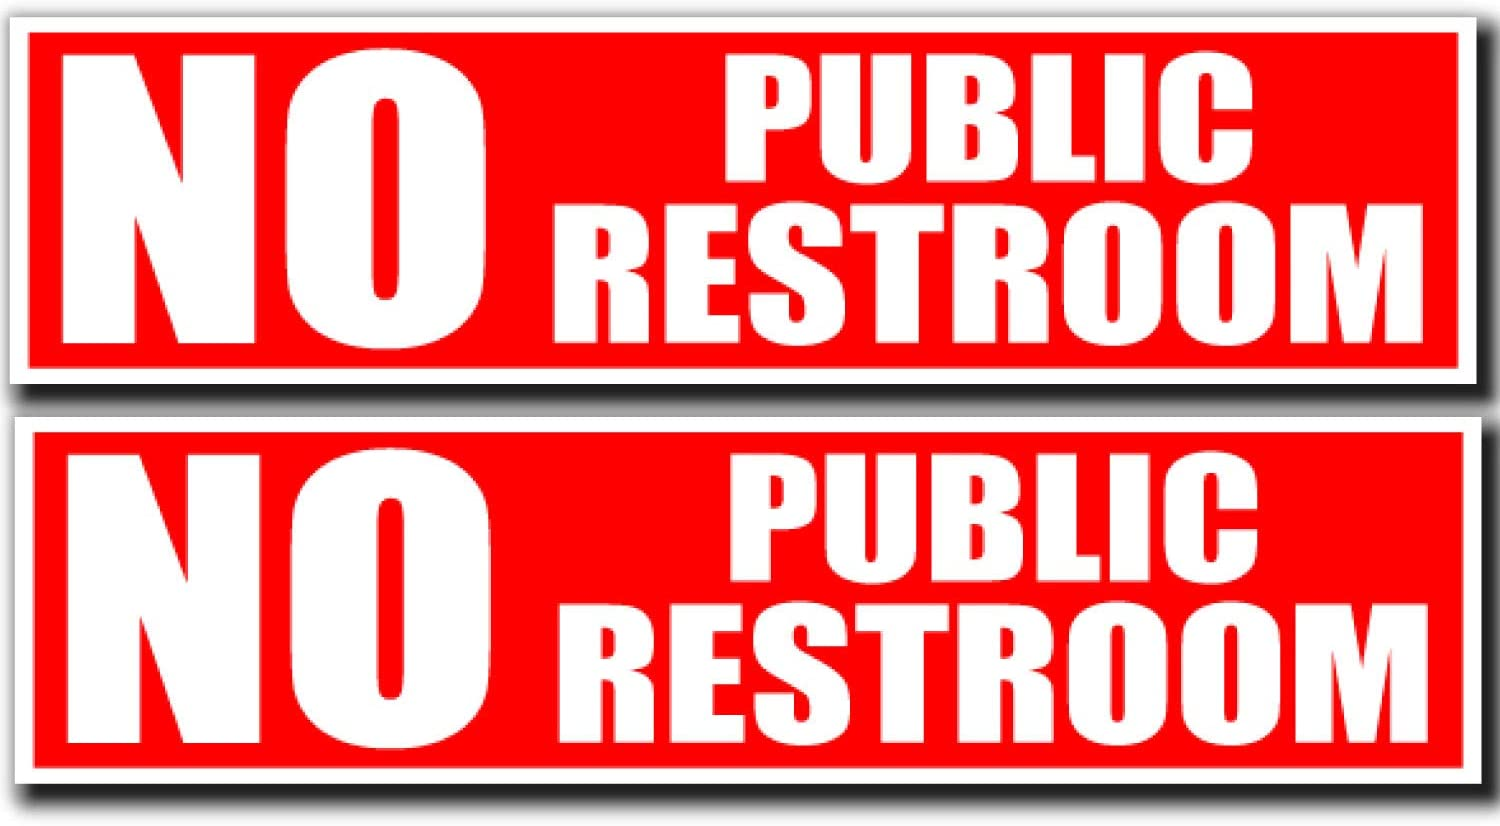 No Public Restroom Sign | Peel and Stick Bathroom Decal Sticker for Door or Window | (8 x 2 inches) Perfect Office or Business | Works on Glass Metal or Any Smooth Surface | Red and White (2)